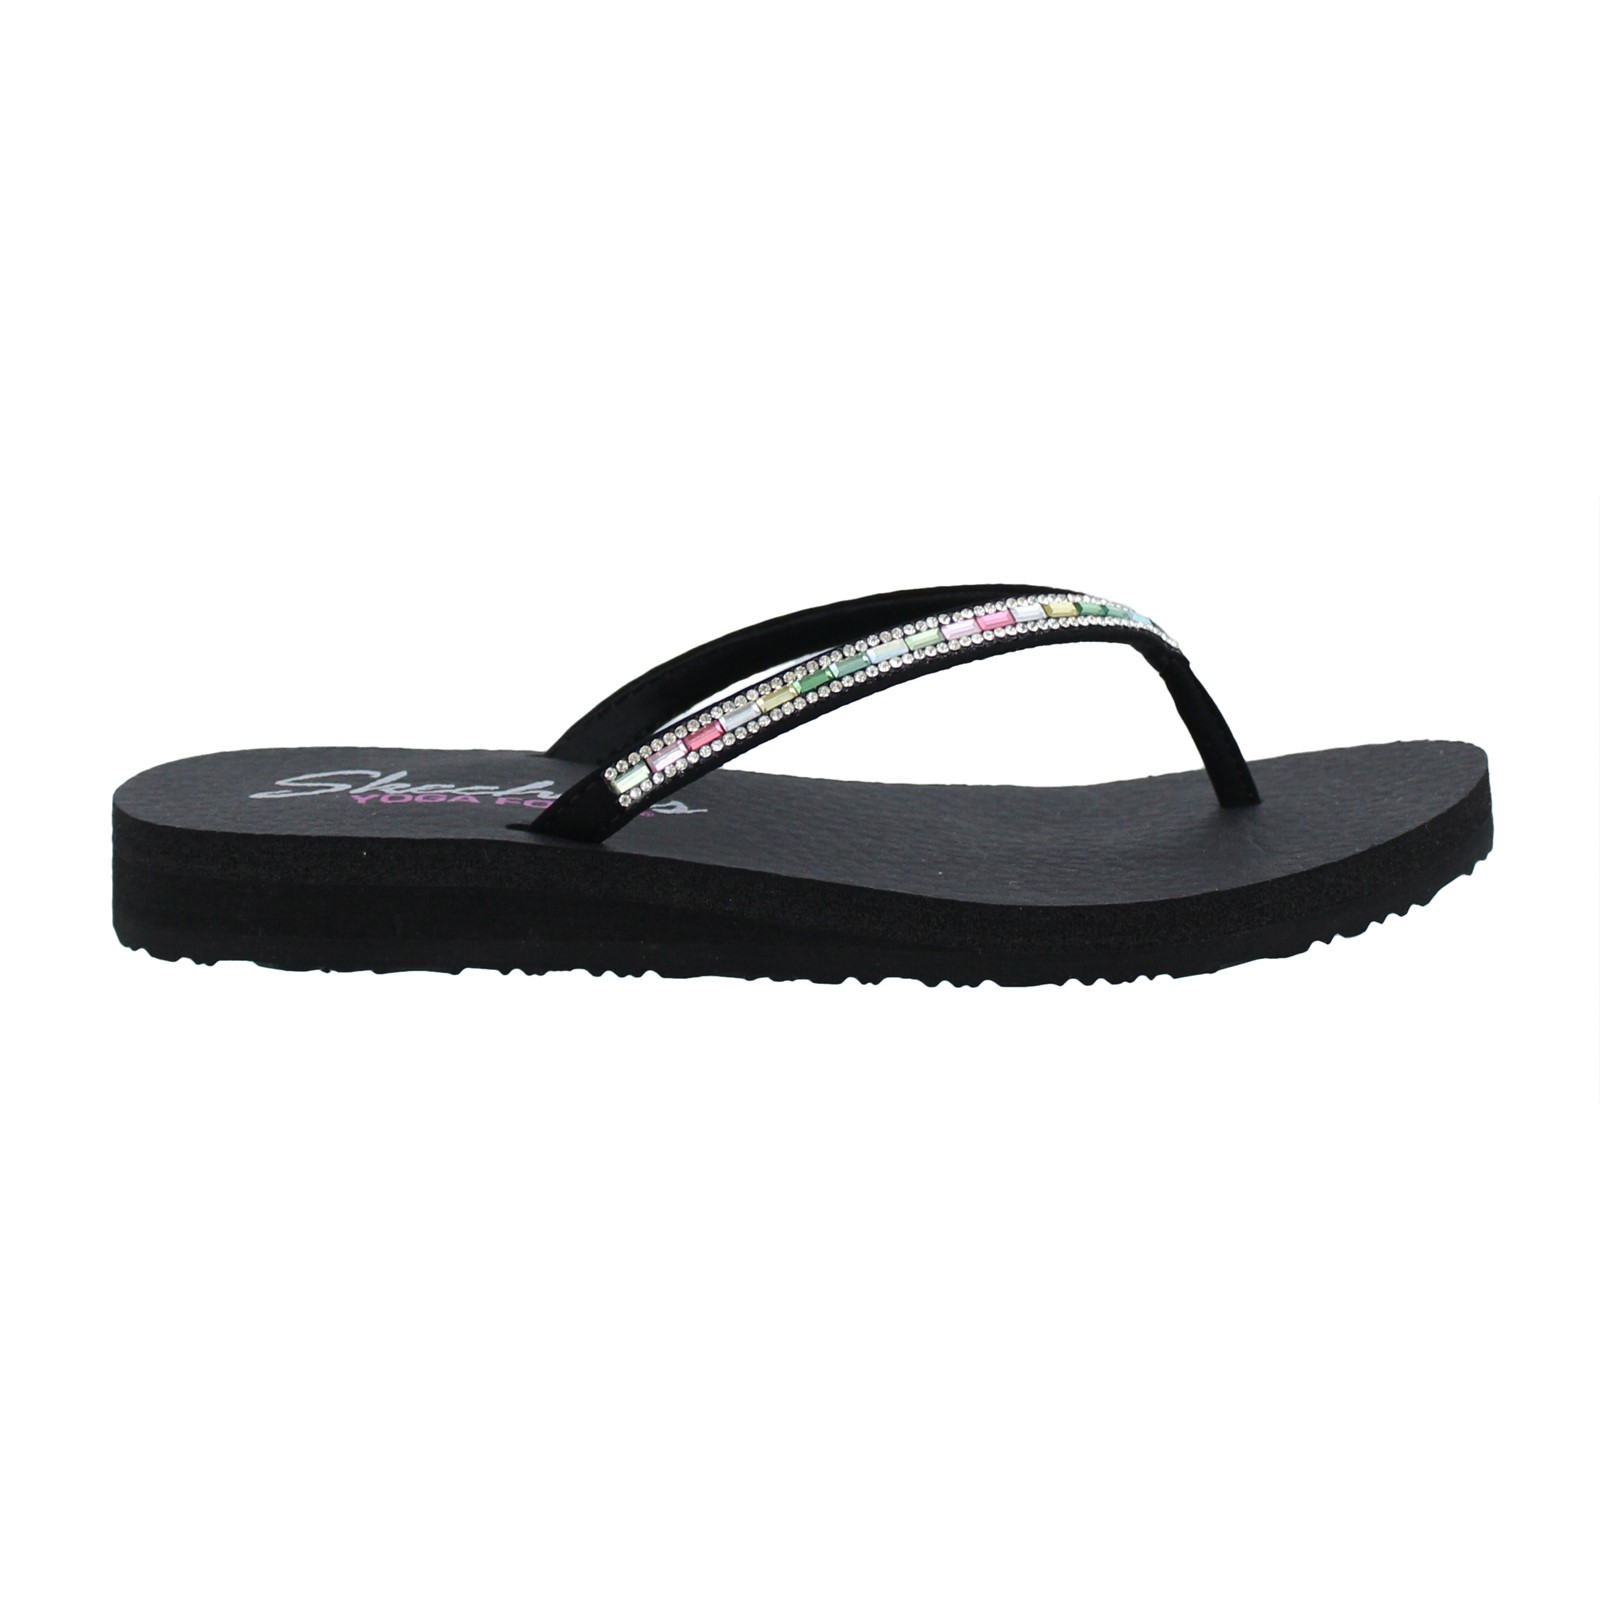 3f0820457 Women s Skechers